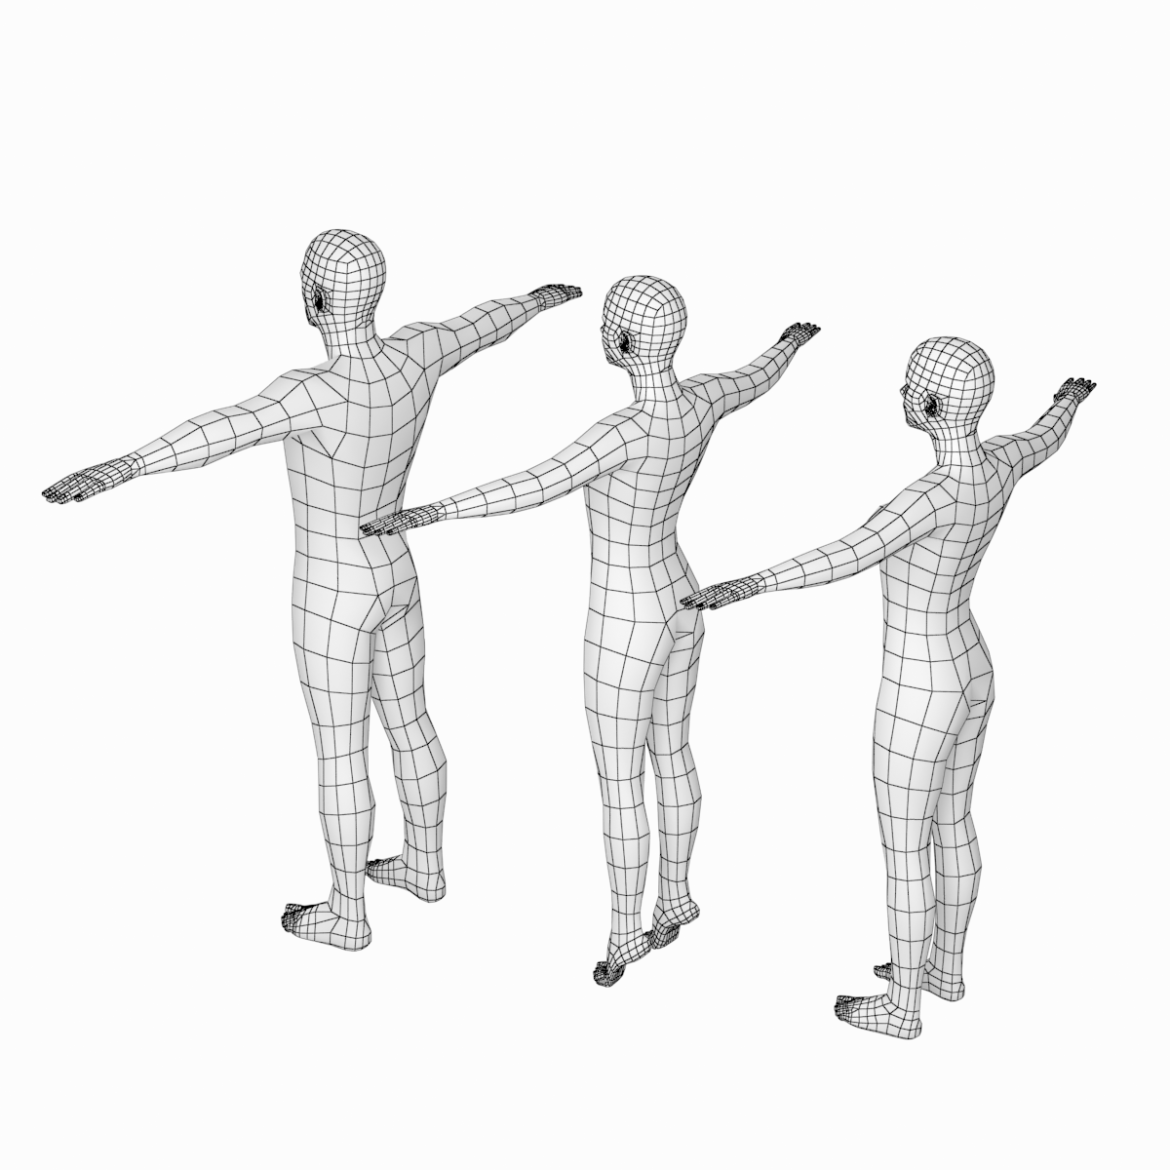 male and female base mesh in t-pose 3d model png stl obj ma mb max fbx dxf dwg dae c4d 3ds txt 305177